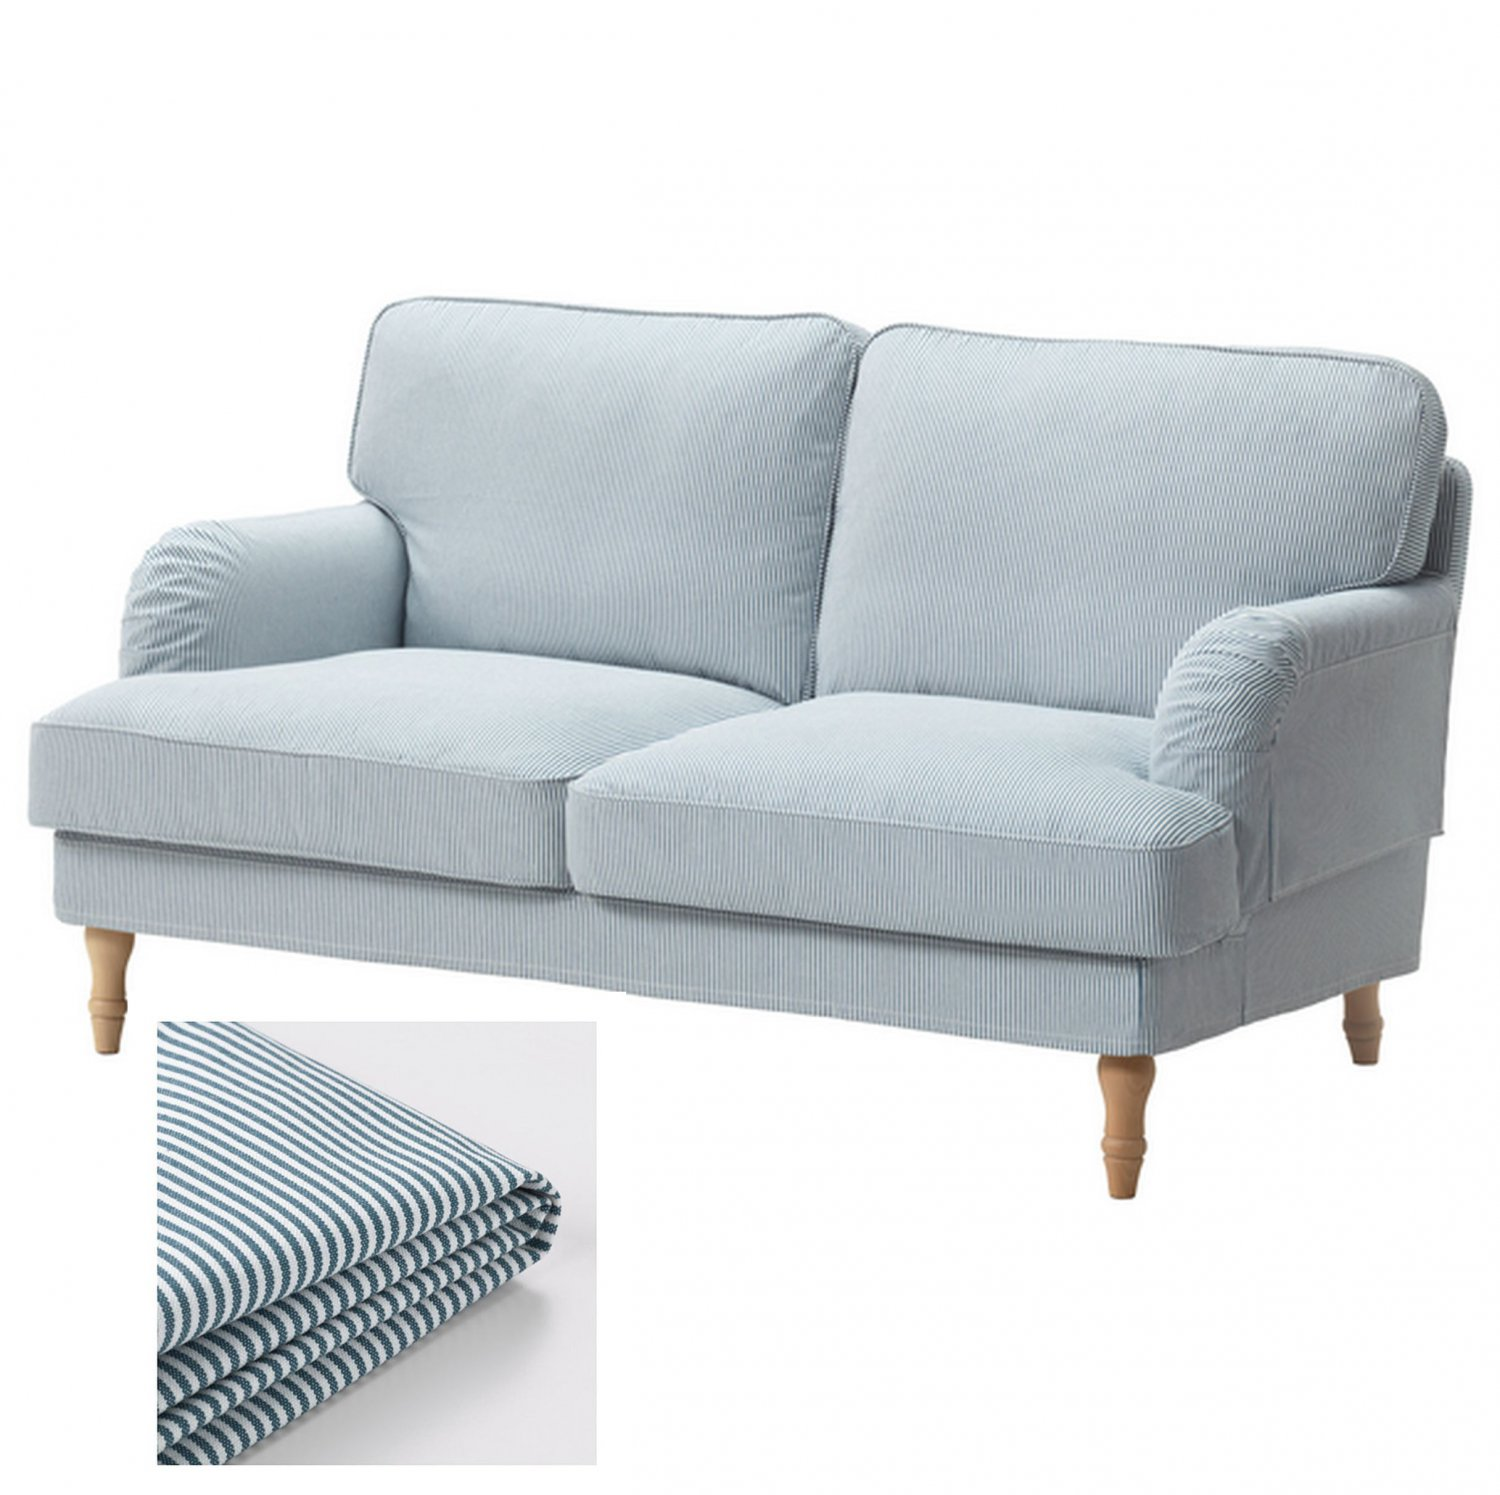 Ikea Stocksund 2 Seat Sofa Slipcover Loveseat Cover Remvallen Blue White Stripes